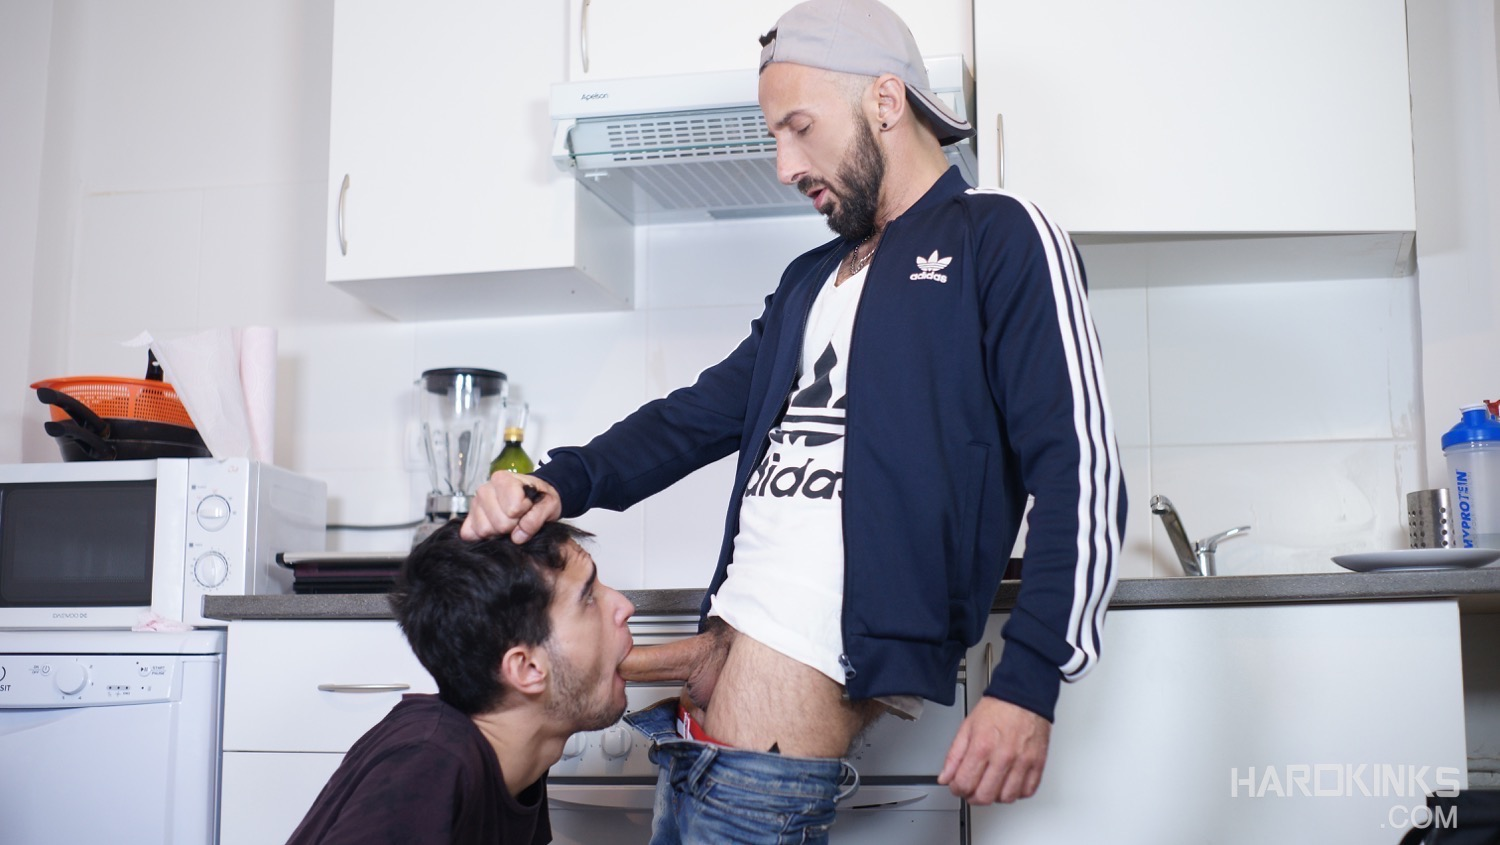 soumission-gay-rasage-06